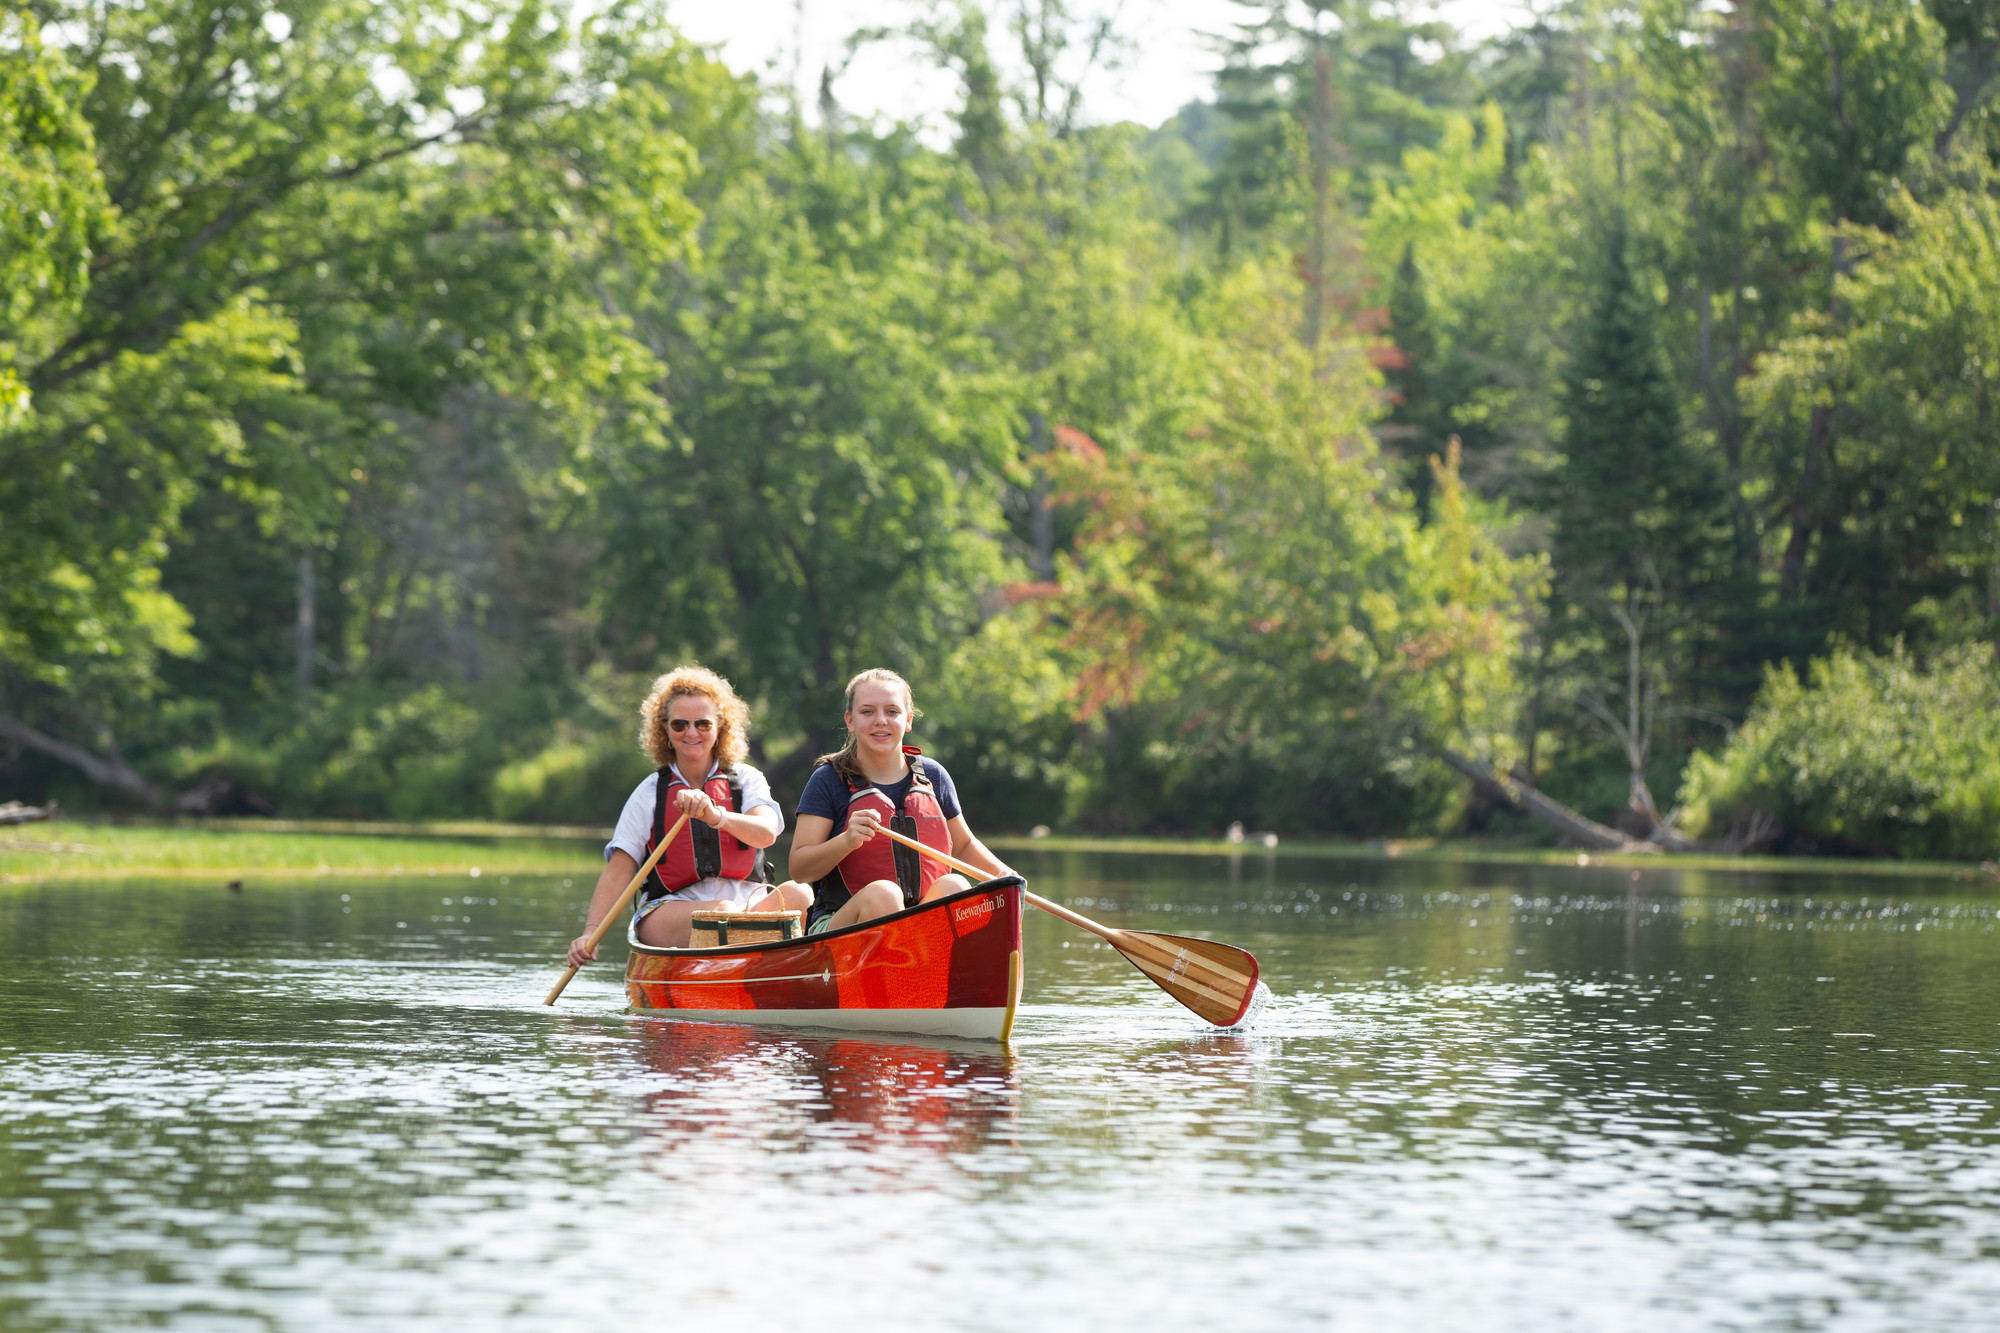 Two women paddle a red canoe along a river with trees in the background.